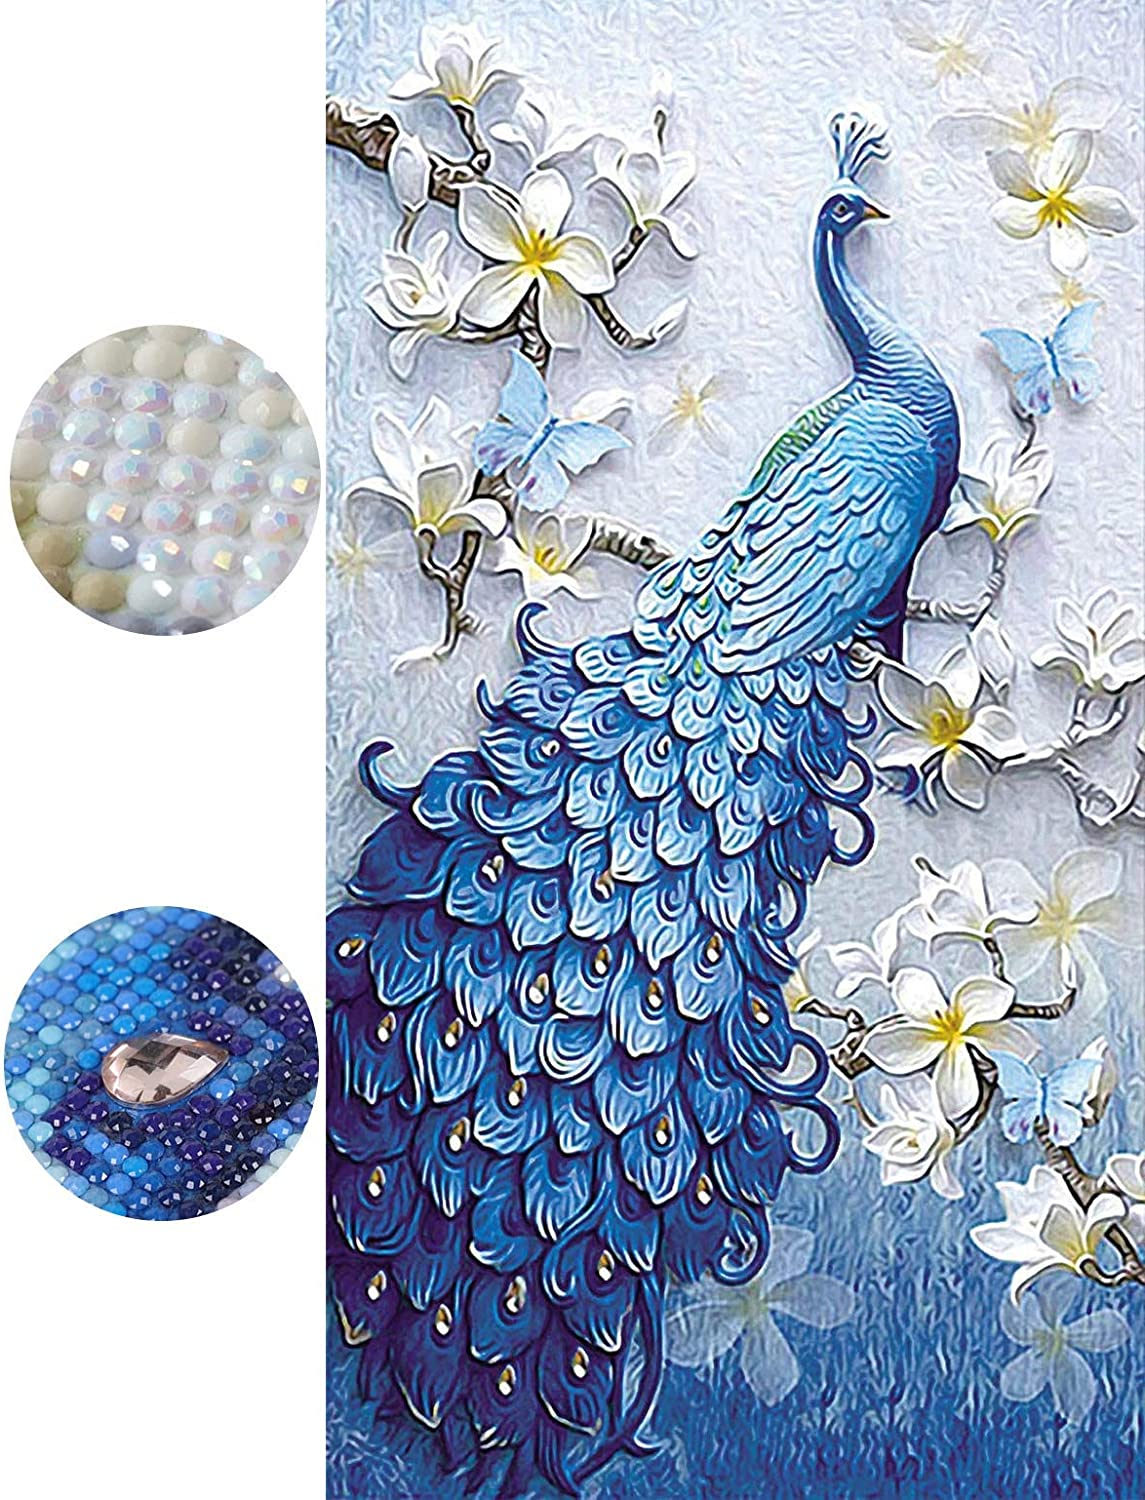 MEIAN Diamond Painting Kits for Adults Beginner Blue Peacock DIY 5D Special Shape Full Drill Art dotz Cross Stitch for Home Wall Decor 32x54cm/12.6x21.3inch